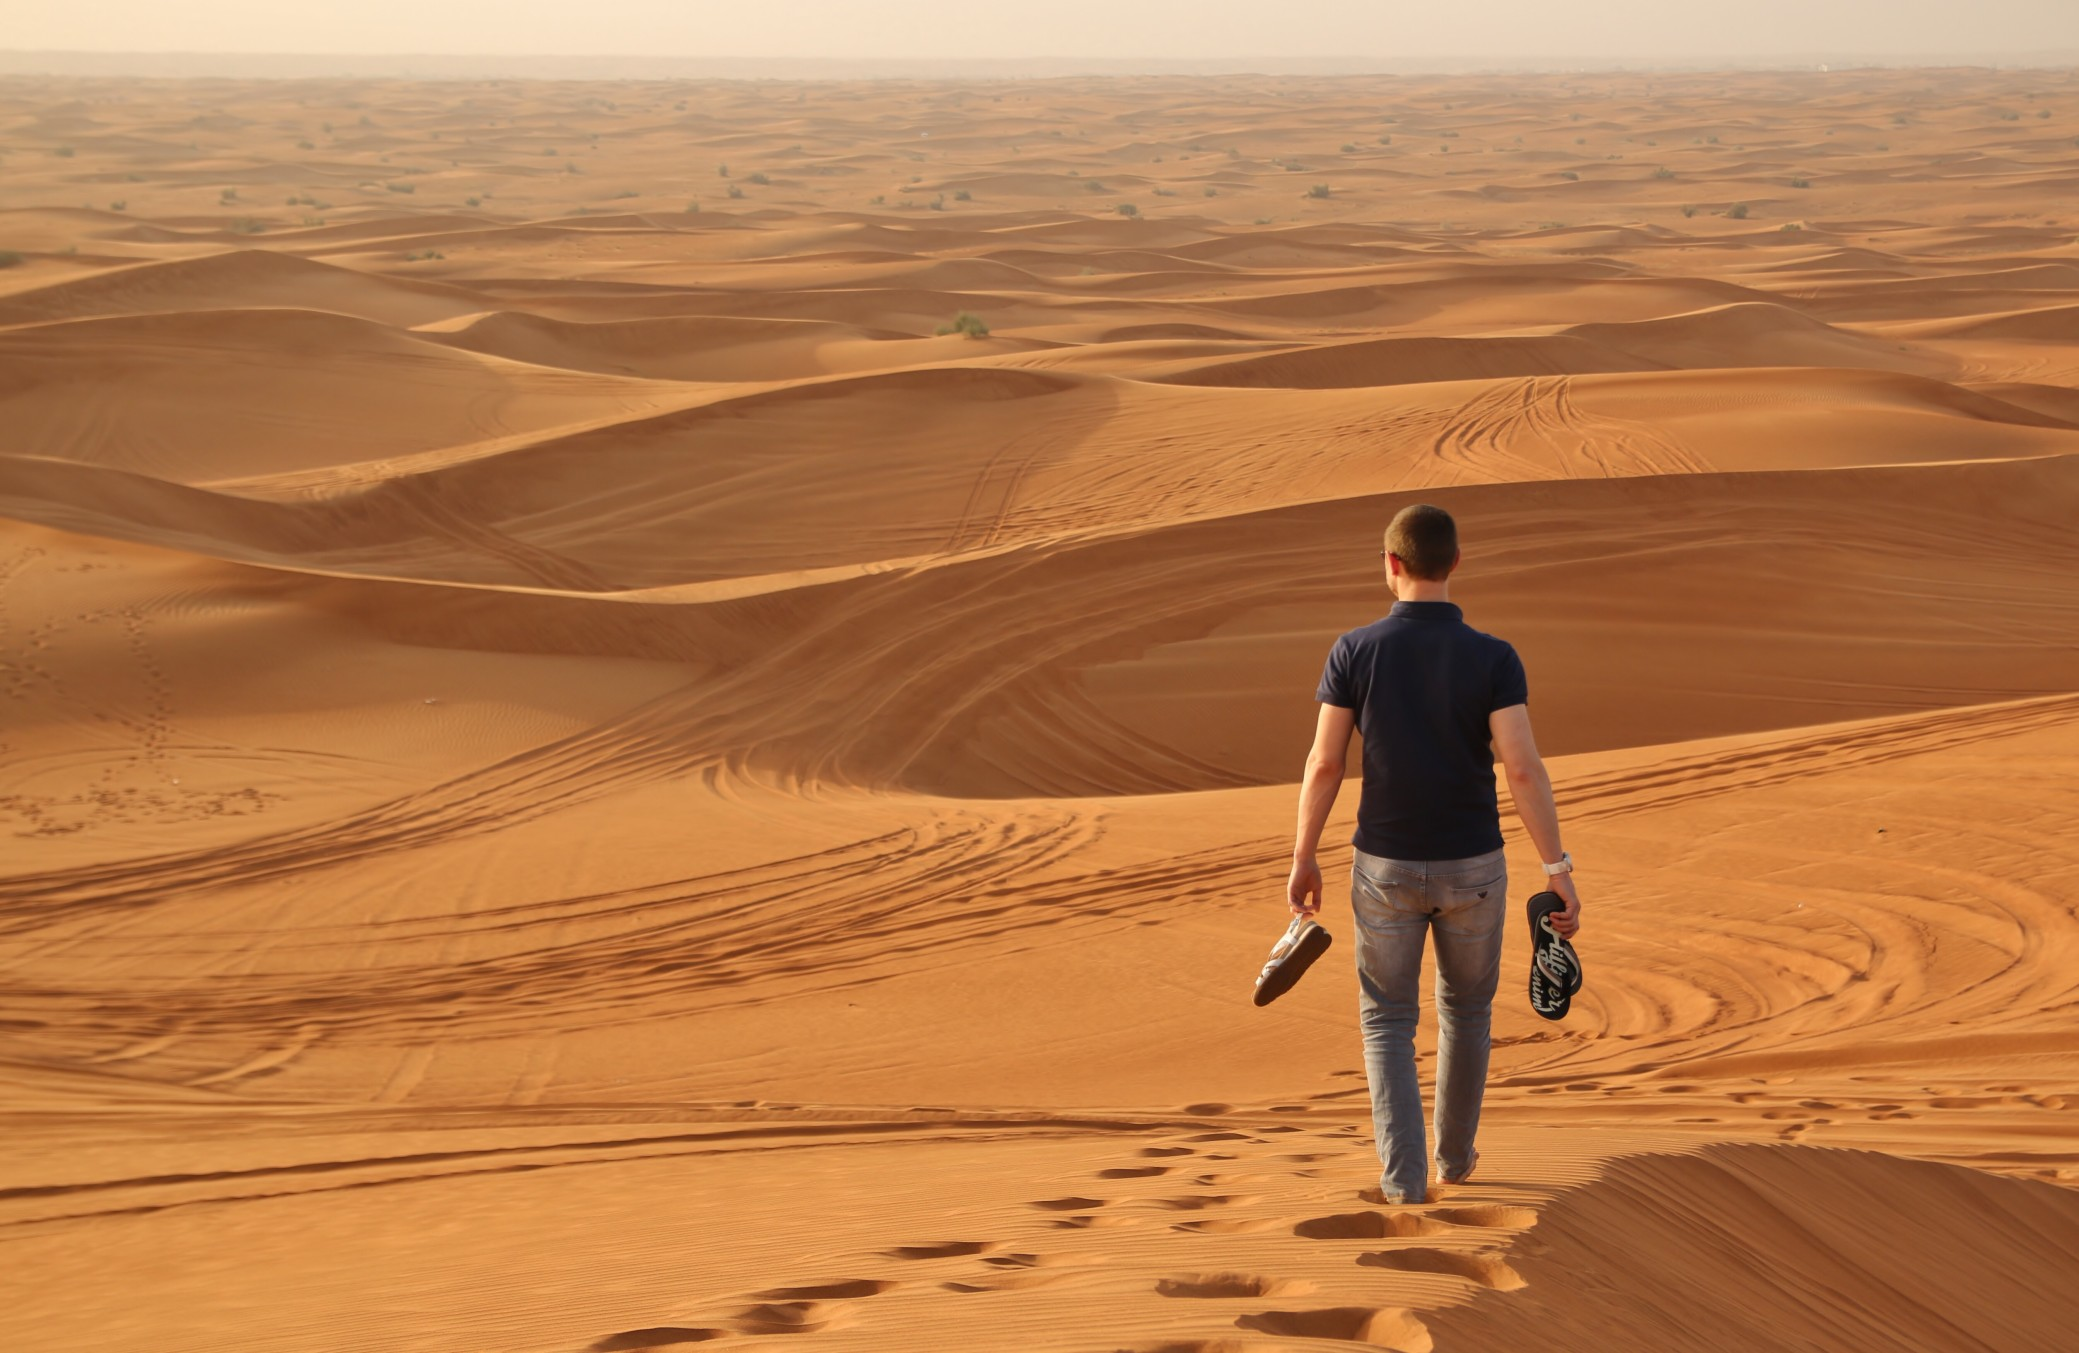 man-alone-in-desert_t20_OoklgL